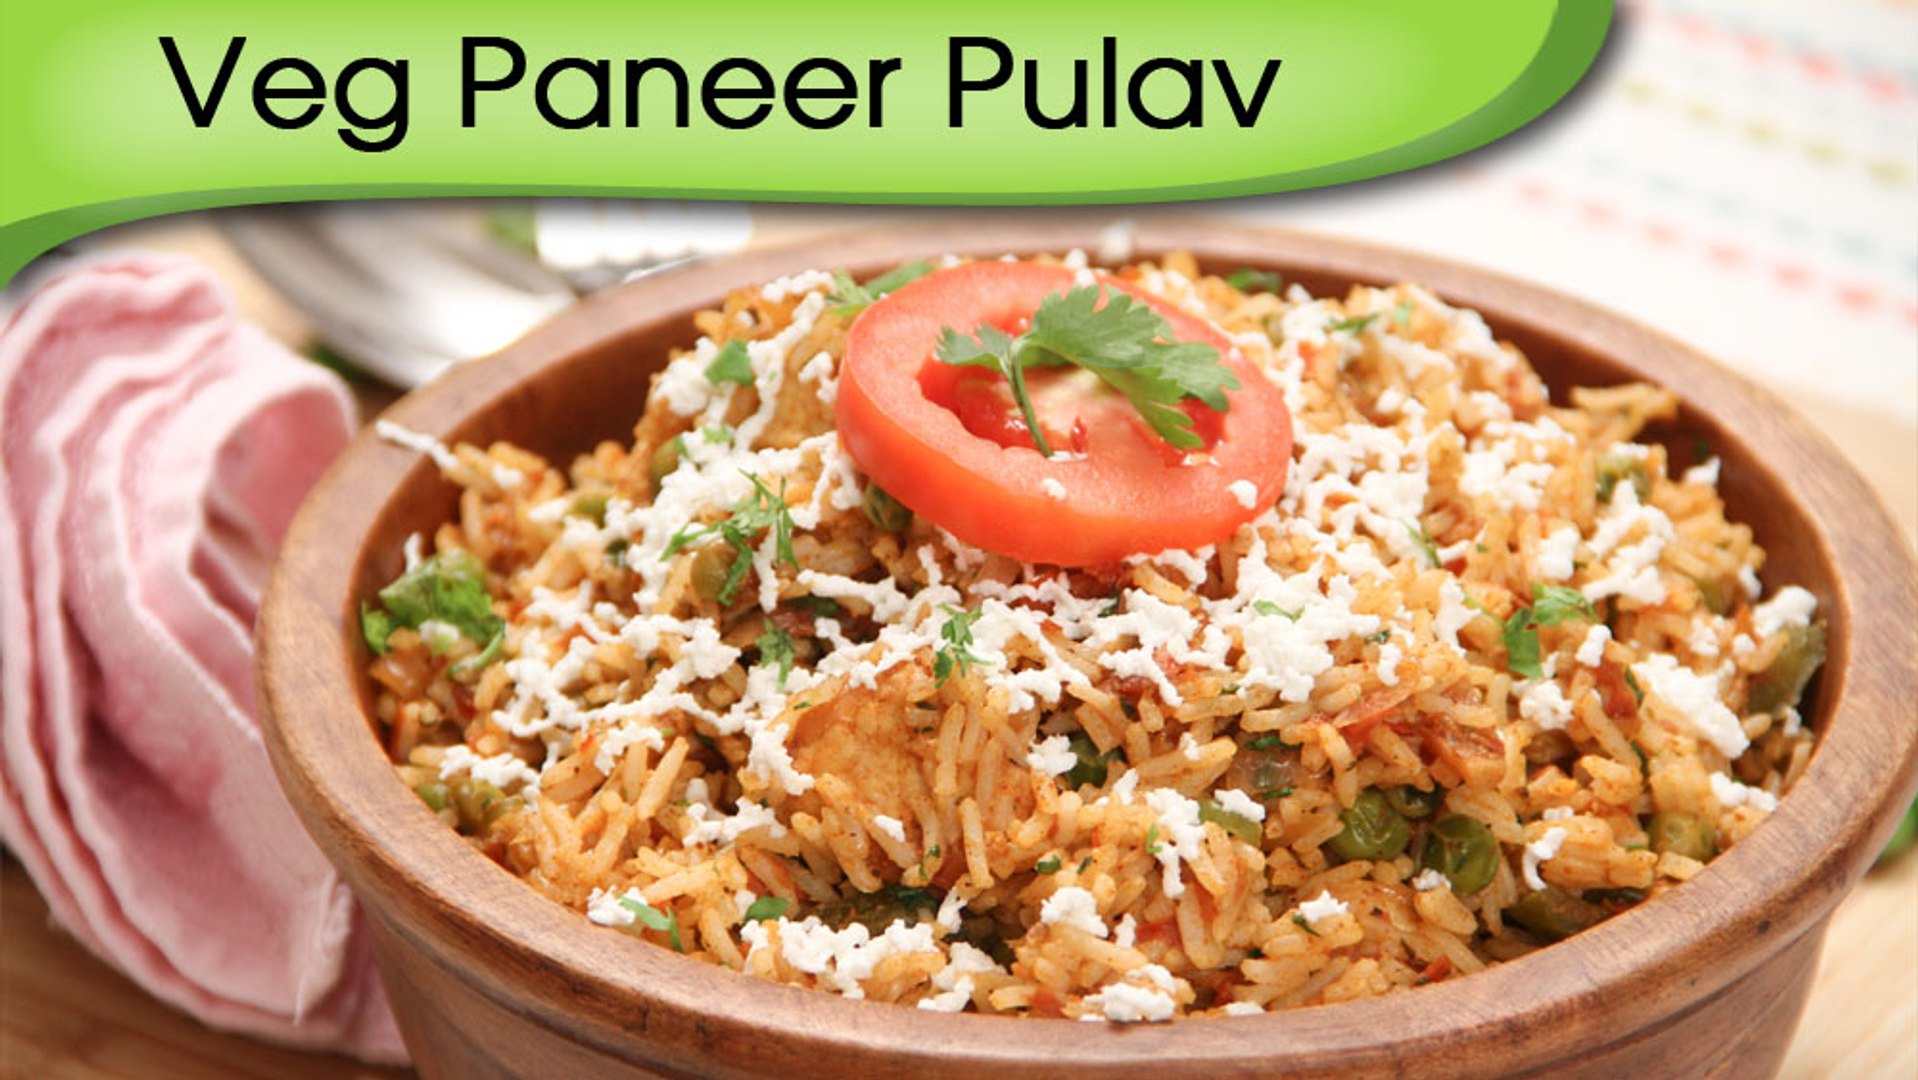 Veg Paneer Pulav - Cottage Cheese With Rice - Maincourse Rice Recipe By Ruchi Bharani